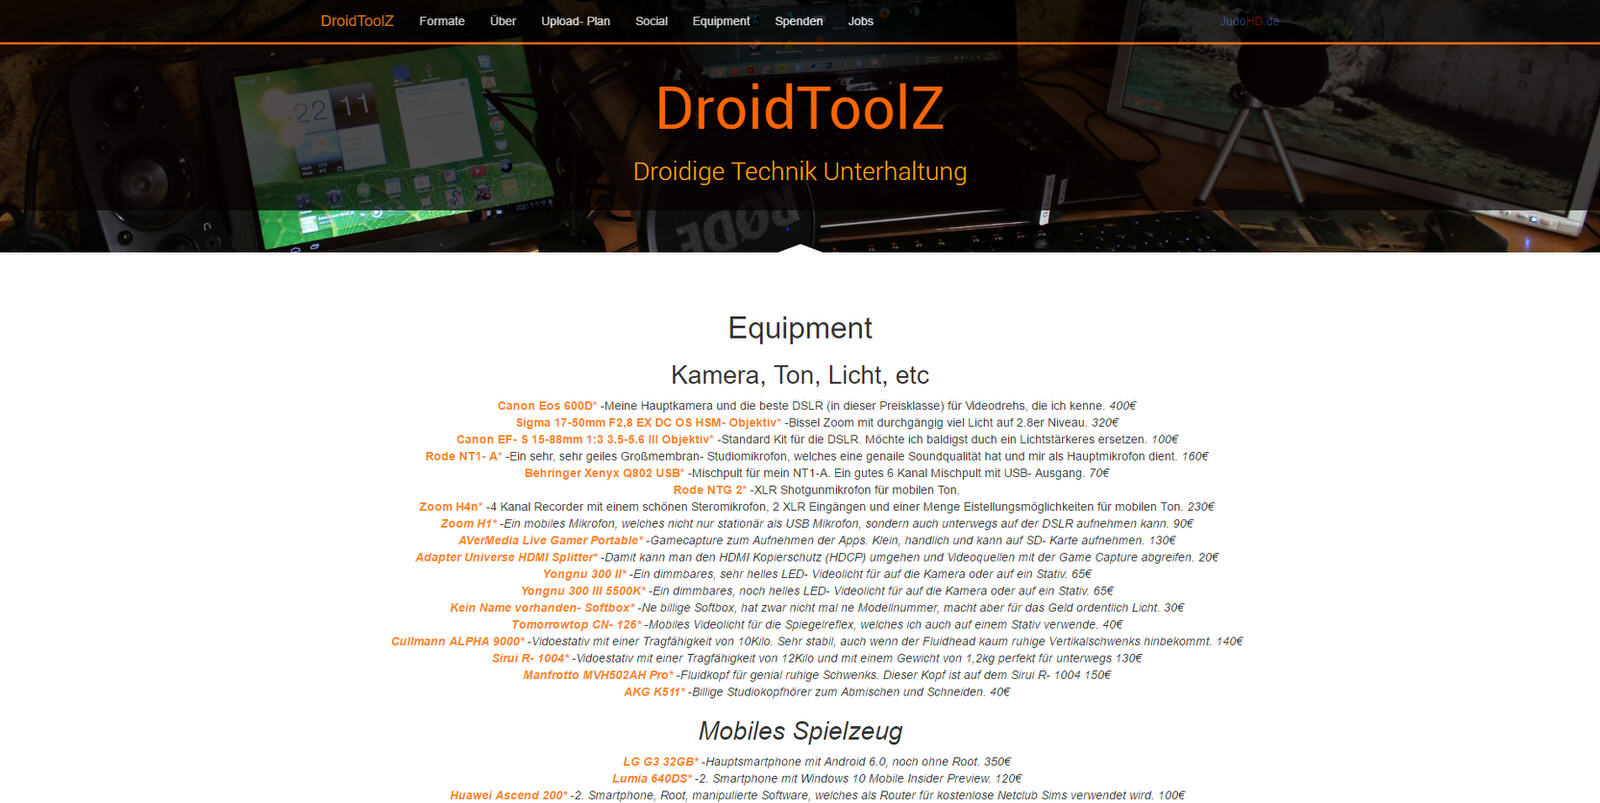 DroidToolZ.de Equipment